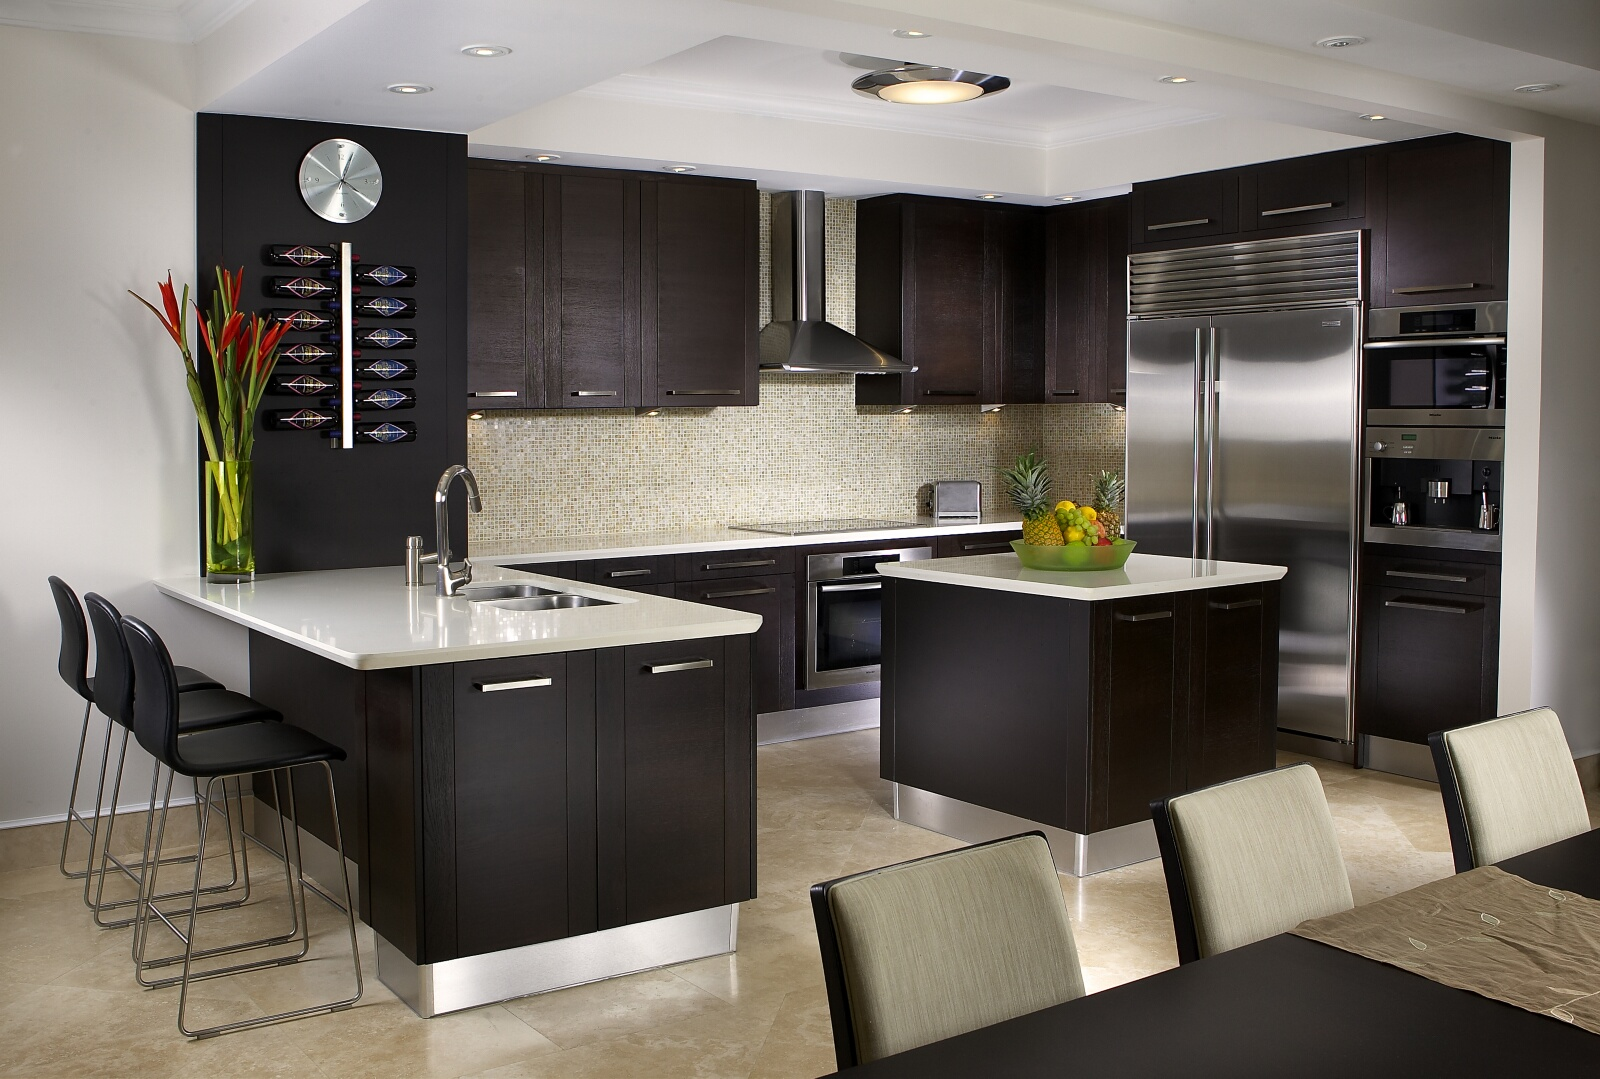 Kitchen interior design services miami florida for Kitchen interior design styles